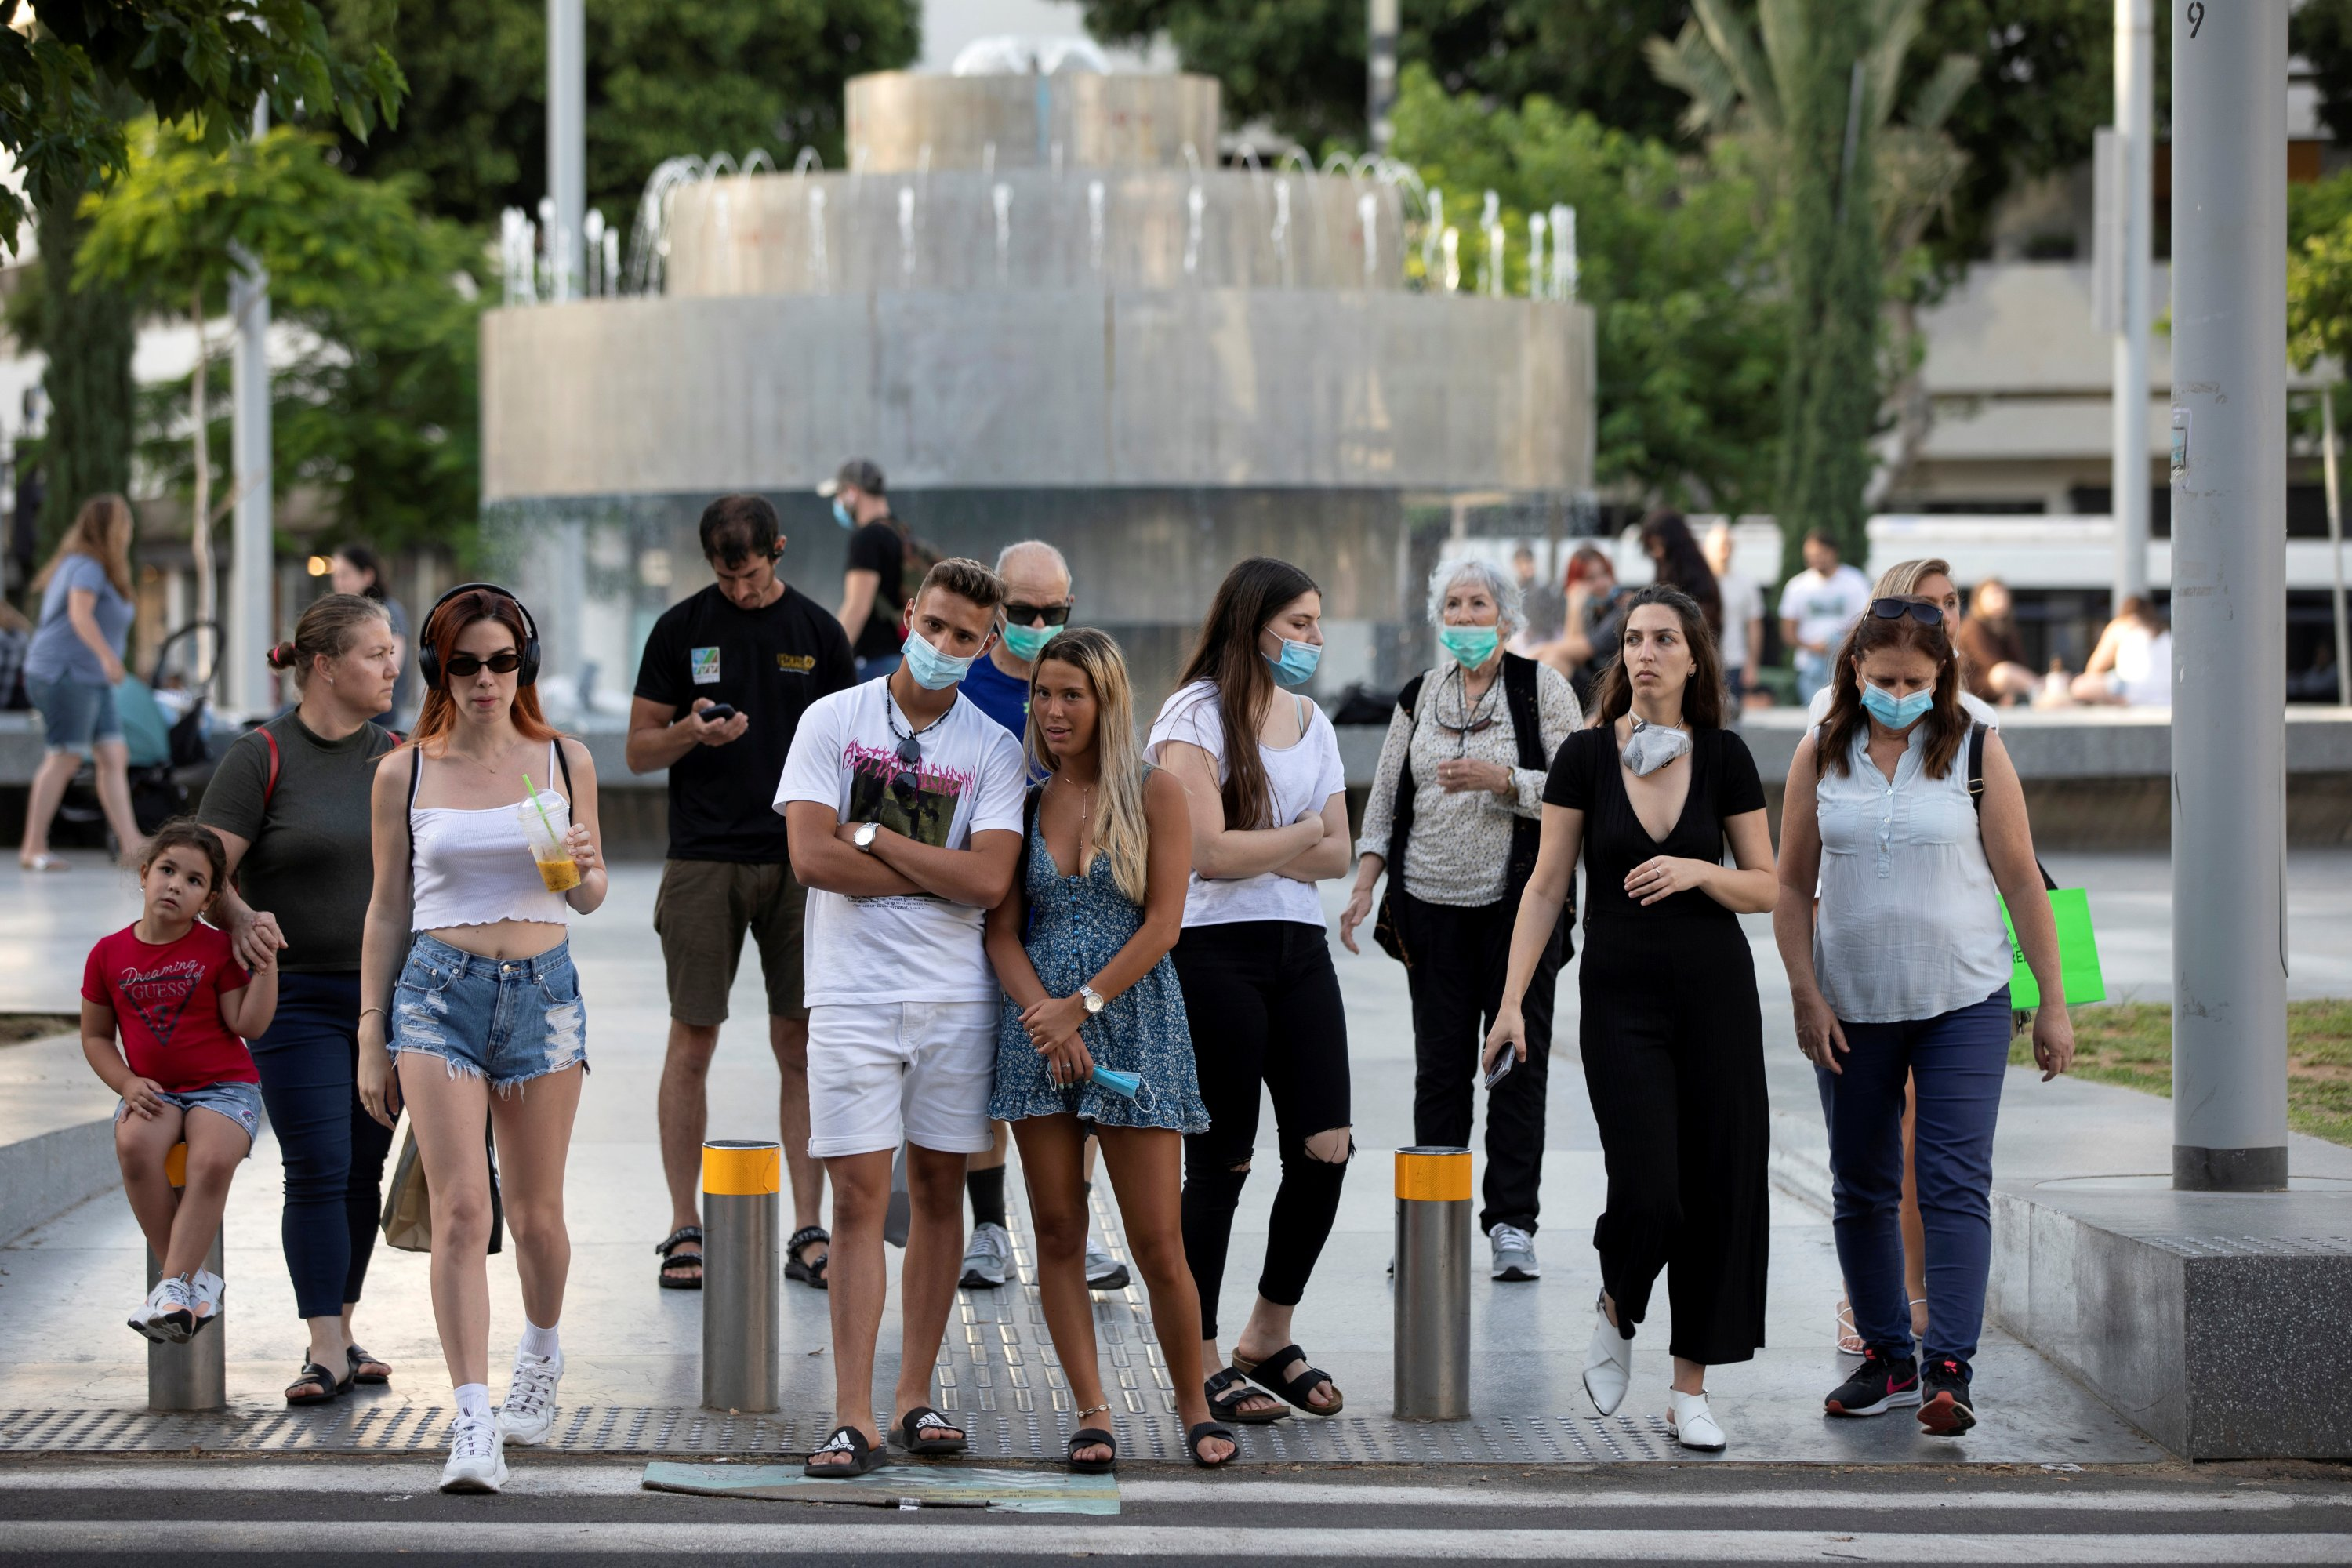 Pedestrians, some wearing masks, prepare to cross the street as some businesses reopened at the end of last month under a host of new rules, in Tel Aviv, Israel June 4, 2020. Picture taken June 4, 2020. (REUTERS Photo)